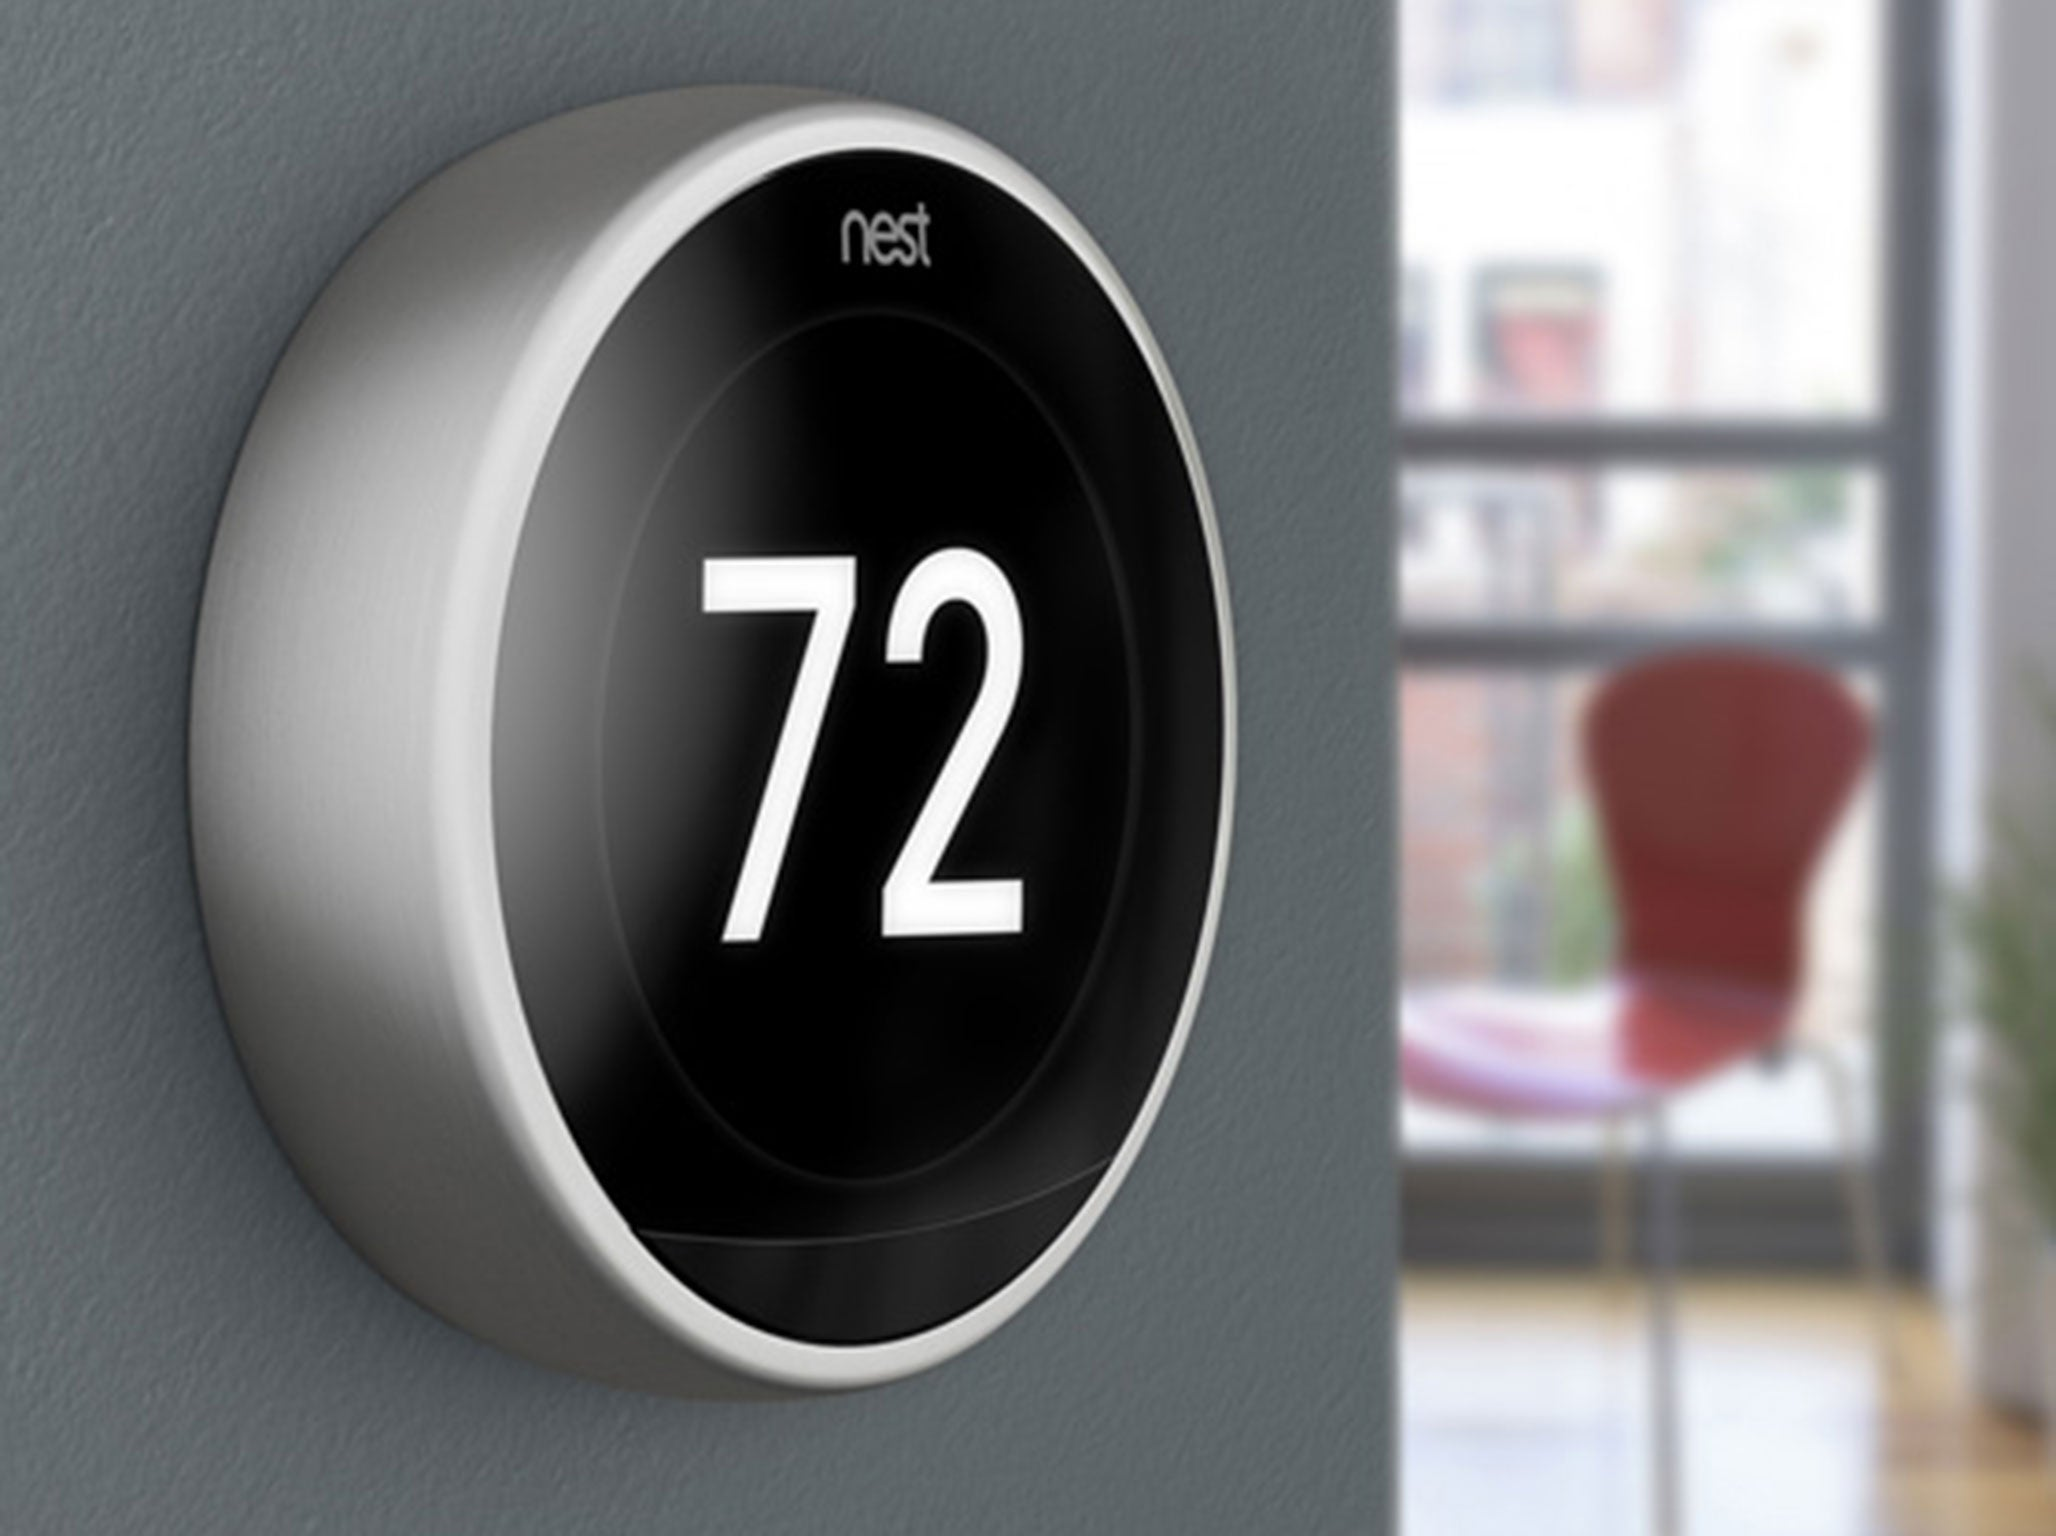 Nest thermostat gets power to control heating alongside new design the independent - Nest thermostat stylish home temperature control ...